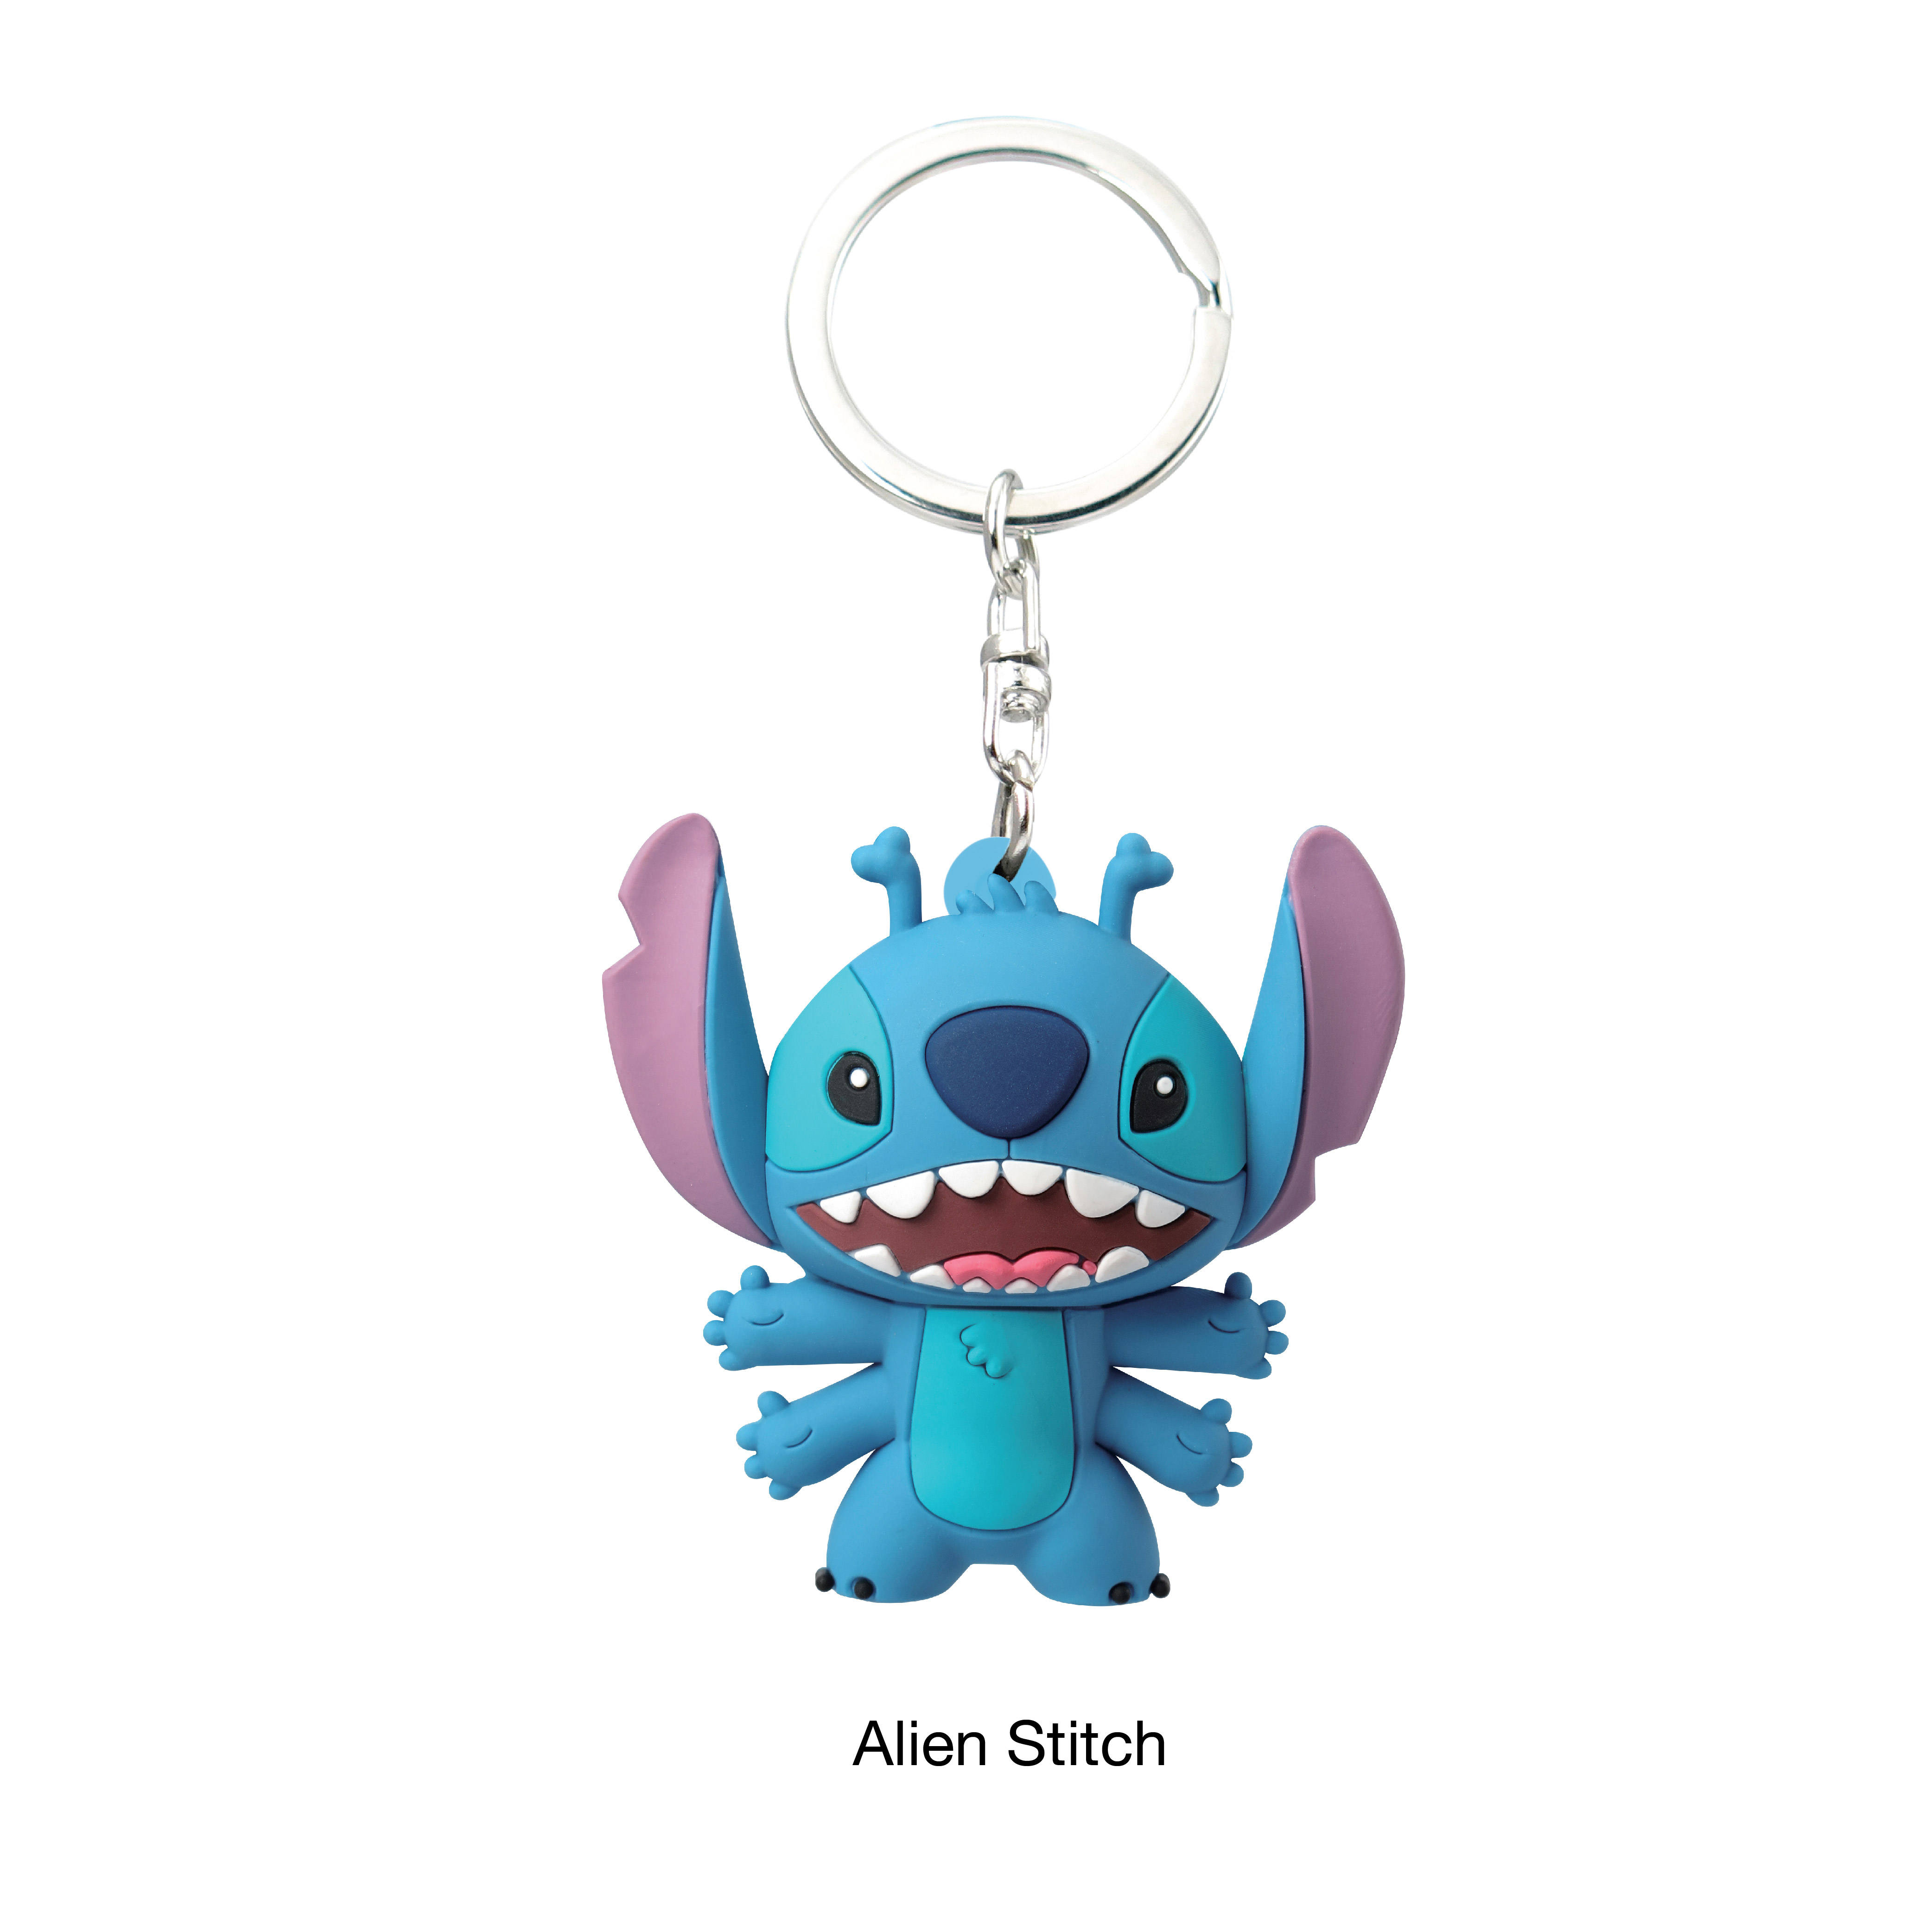 TOP QUALITY COOL PLASTIC 3D FOAM FIGURES PRESENT DISNEY STITCH SERIES 2 EVENT GIFT BAG CLIP KEY CHAIN FOR LADIES